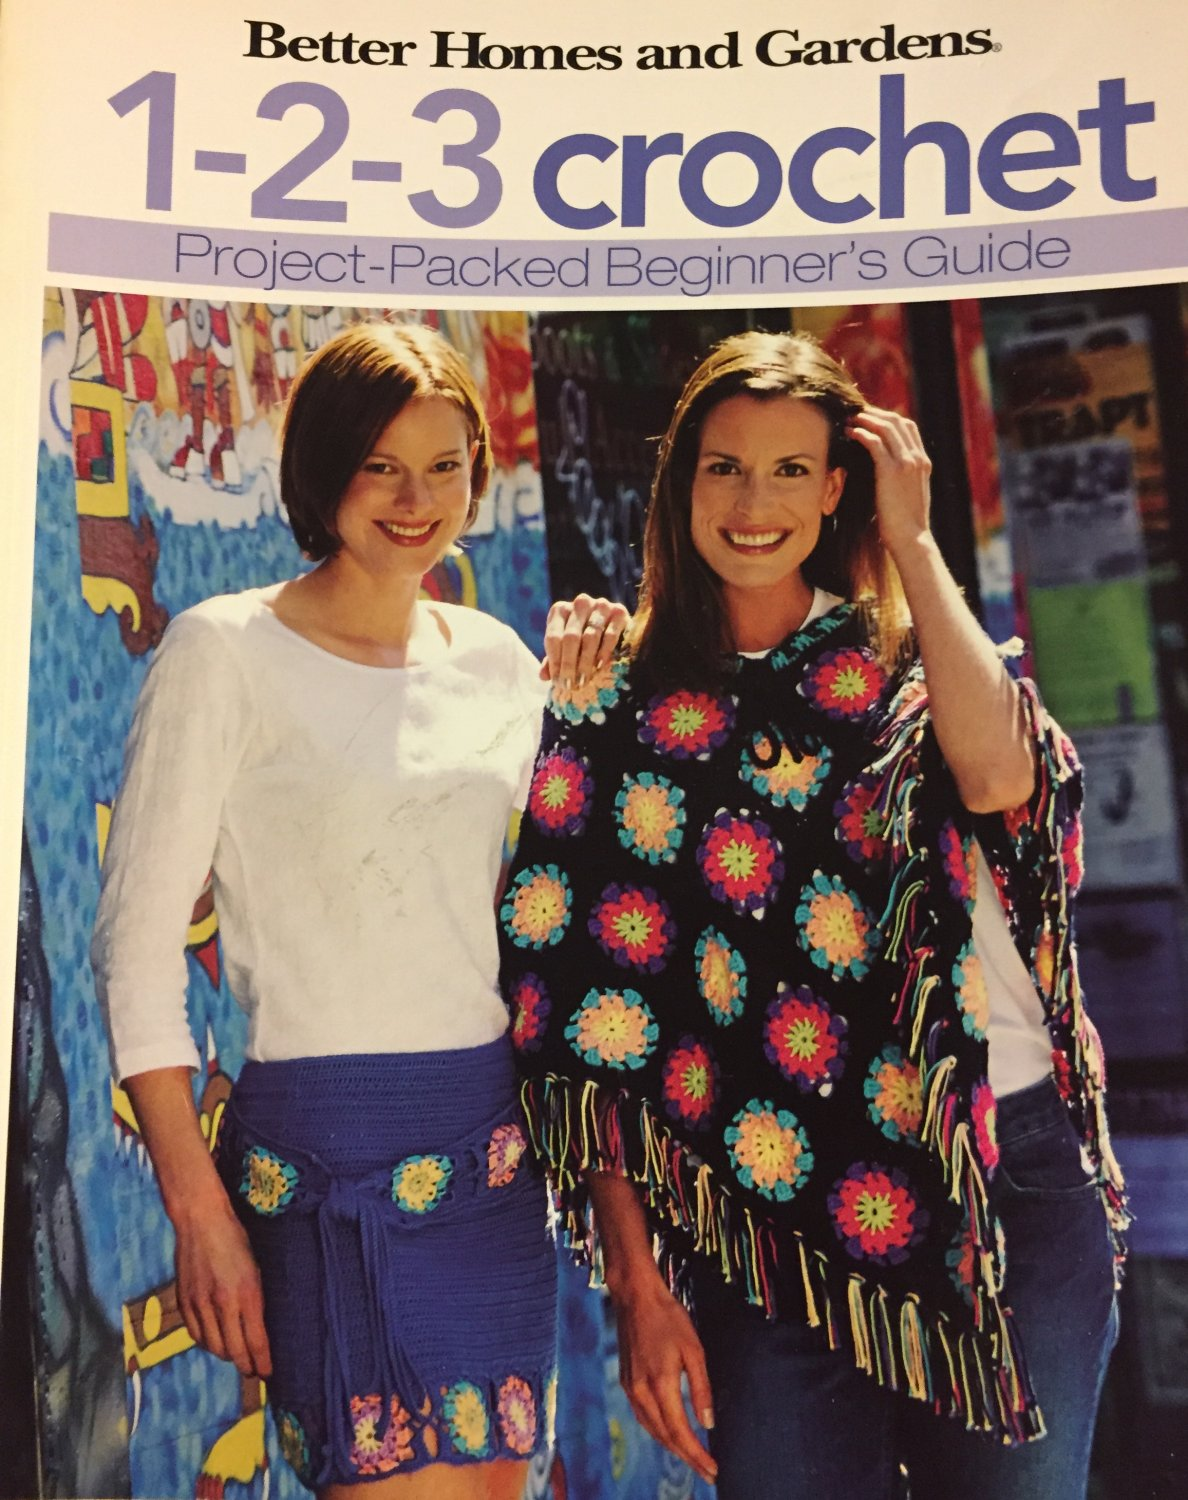 Better Homes and Gardens 1 2 3 Crochet Project Packed Beginner's Guide Pattern